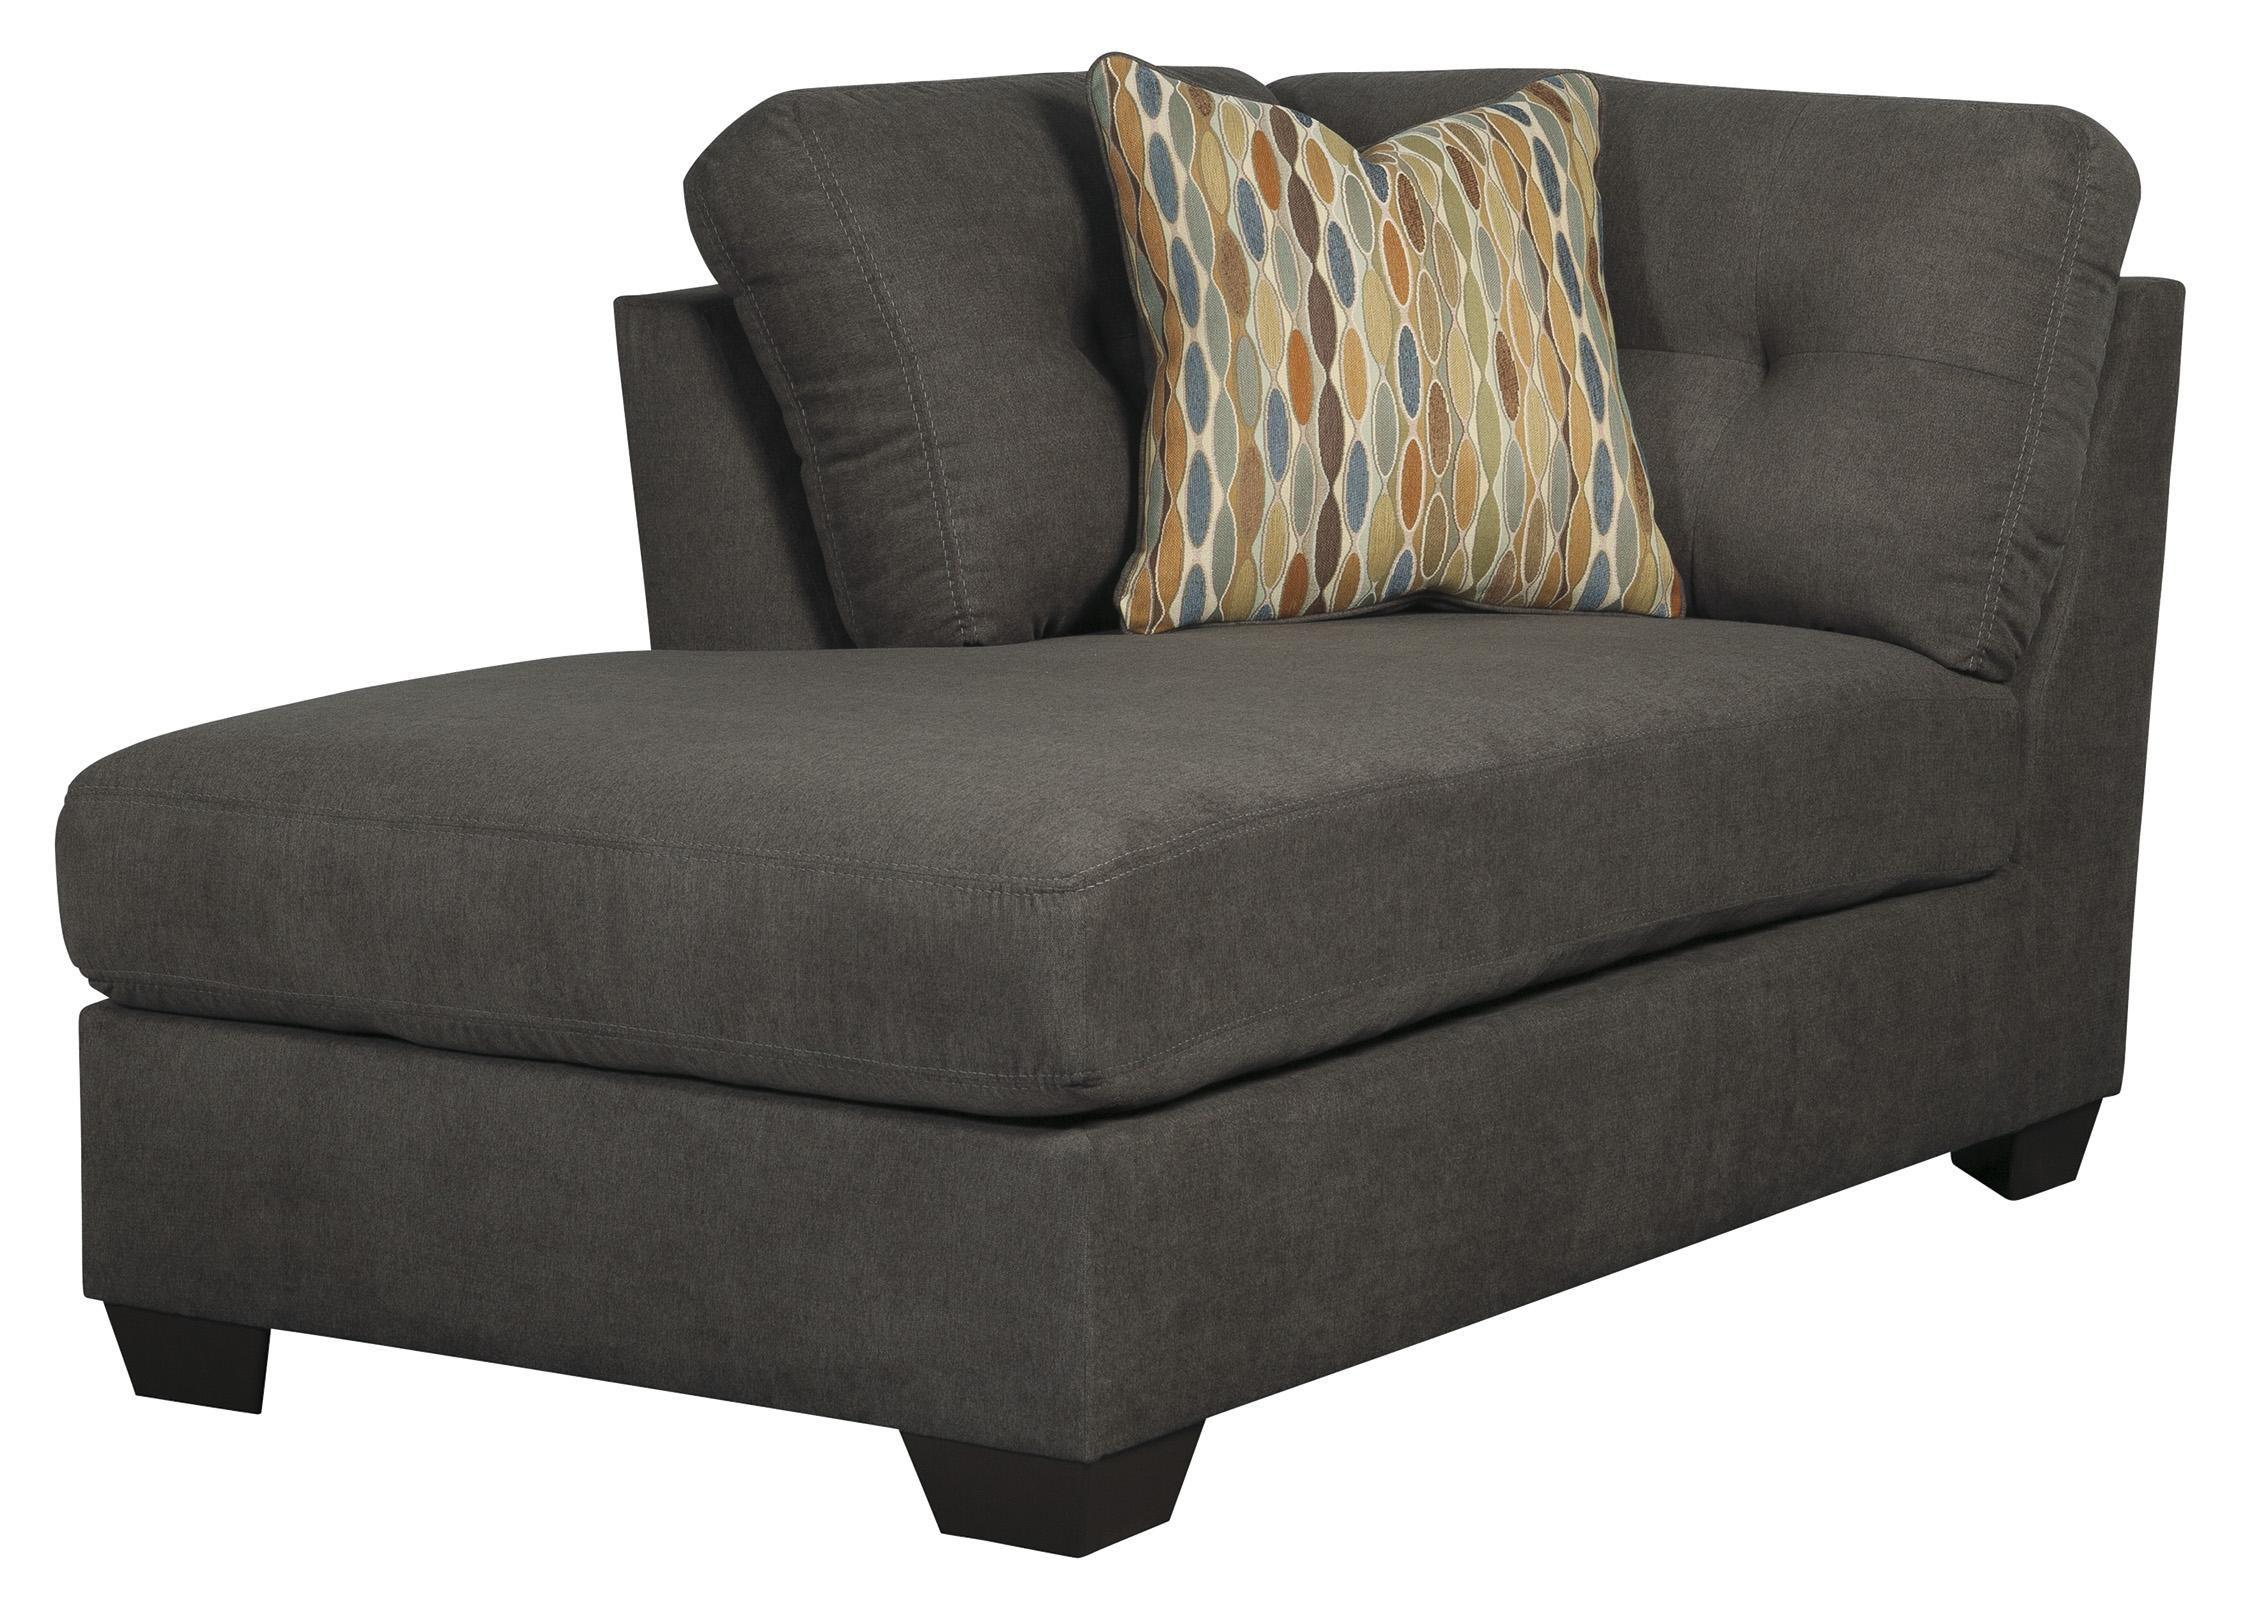 3 piece modular sectional w armless sleeper left chaise for 3 piece sectional sofa with sleeper